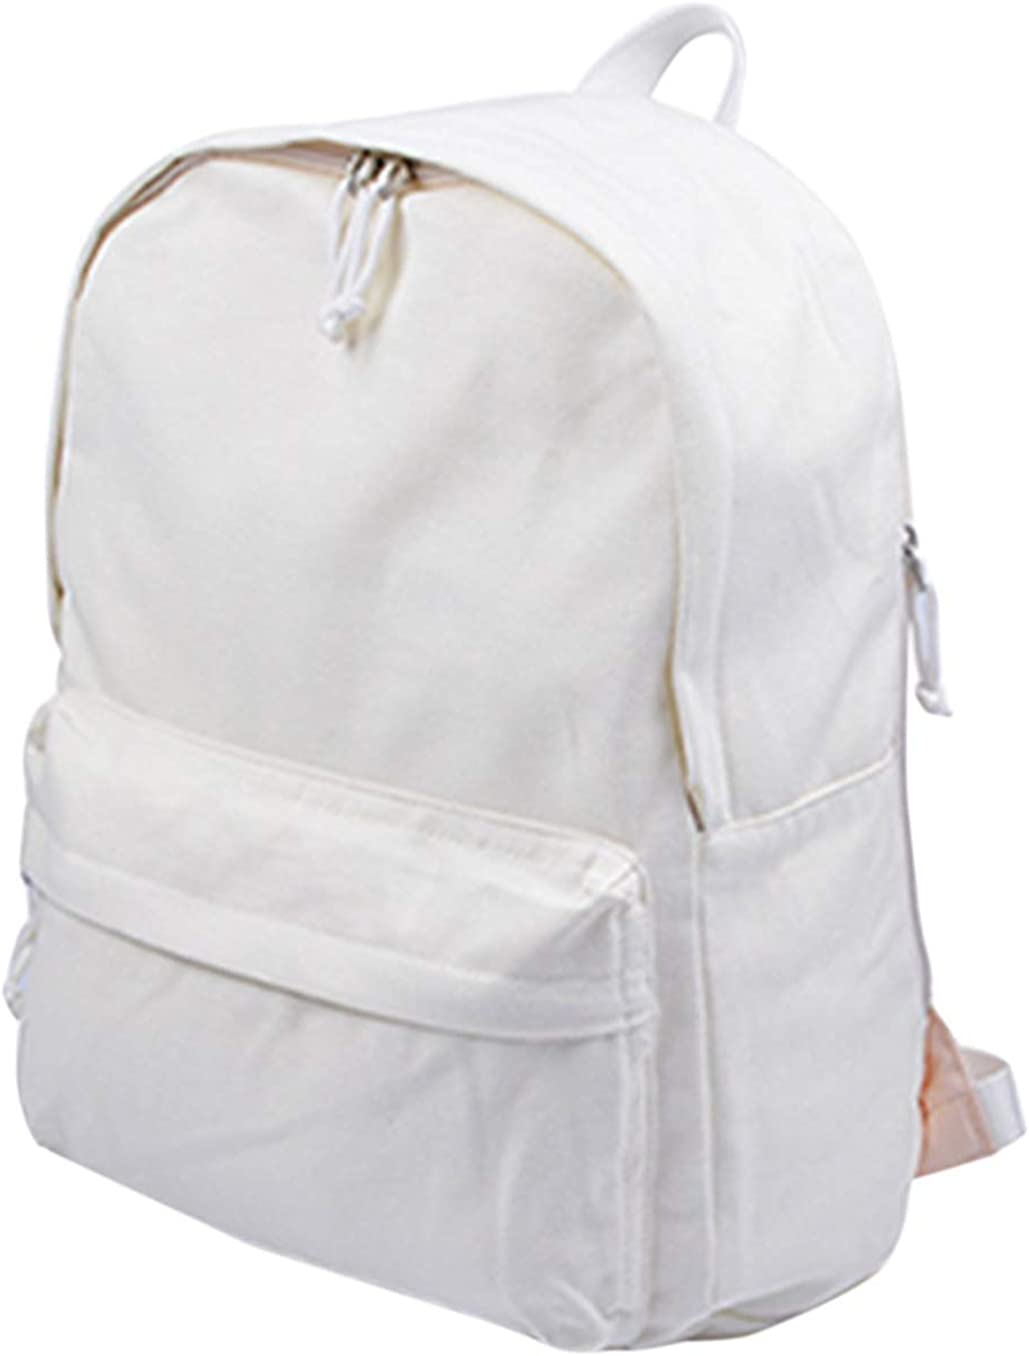 Jesdo DIY Canvas Backpack Large Casual Daypack Satchel